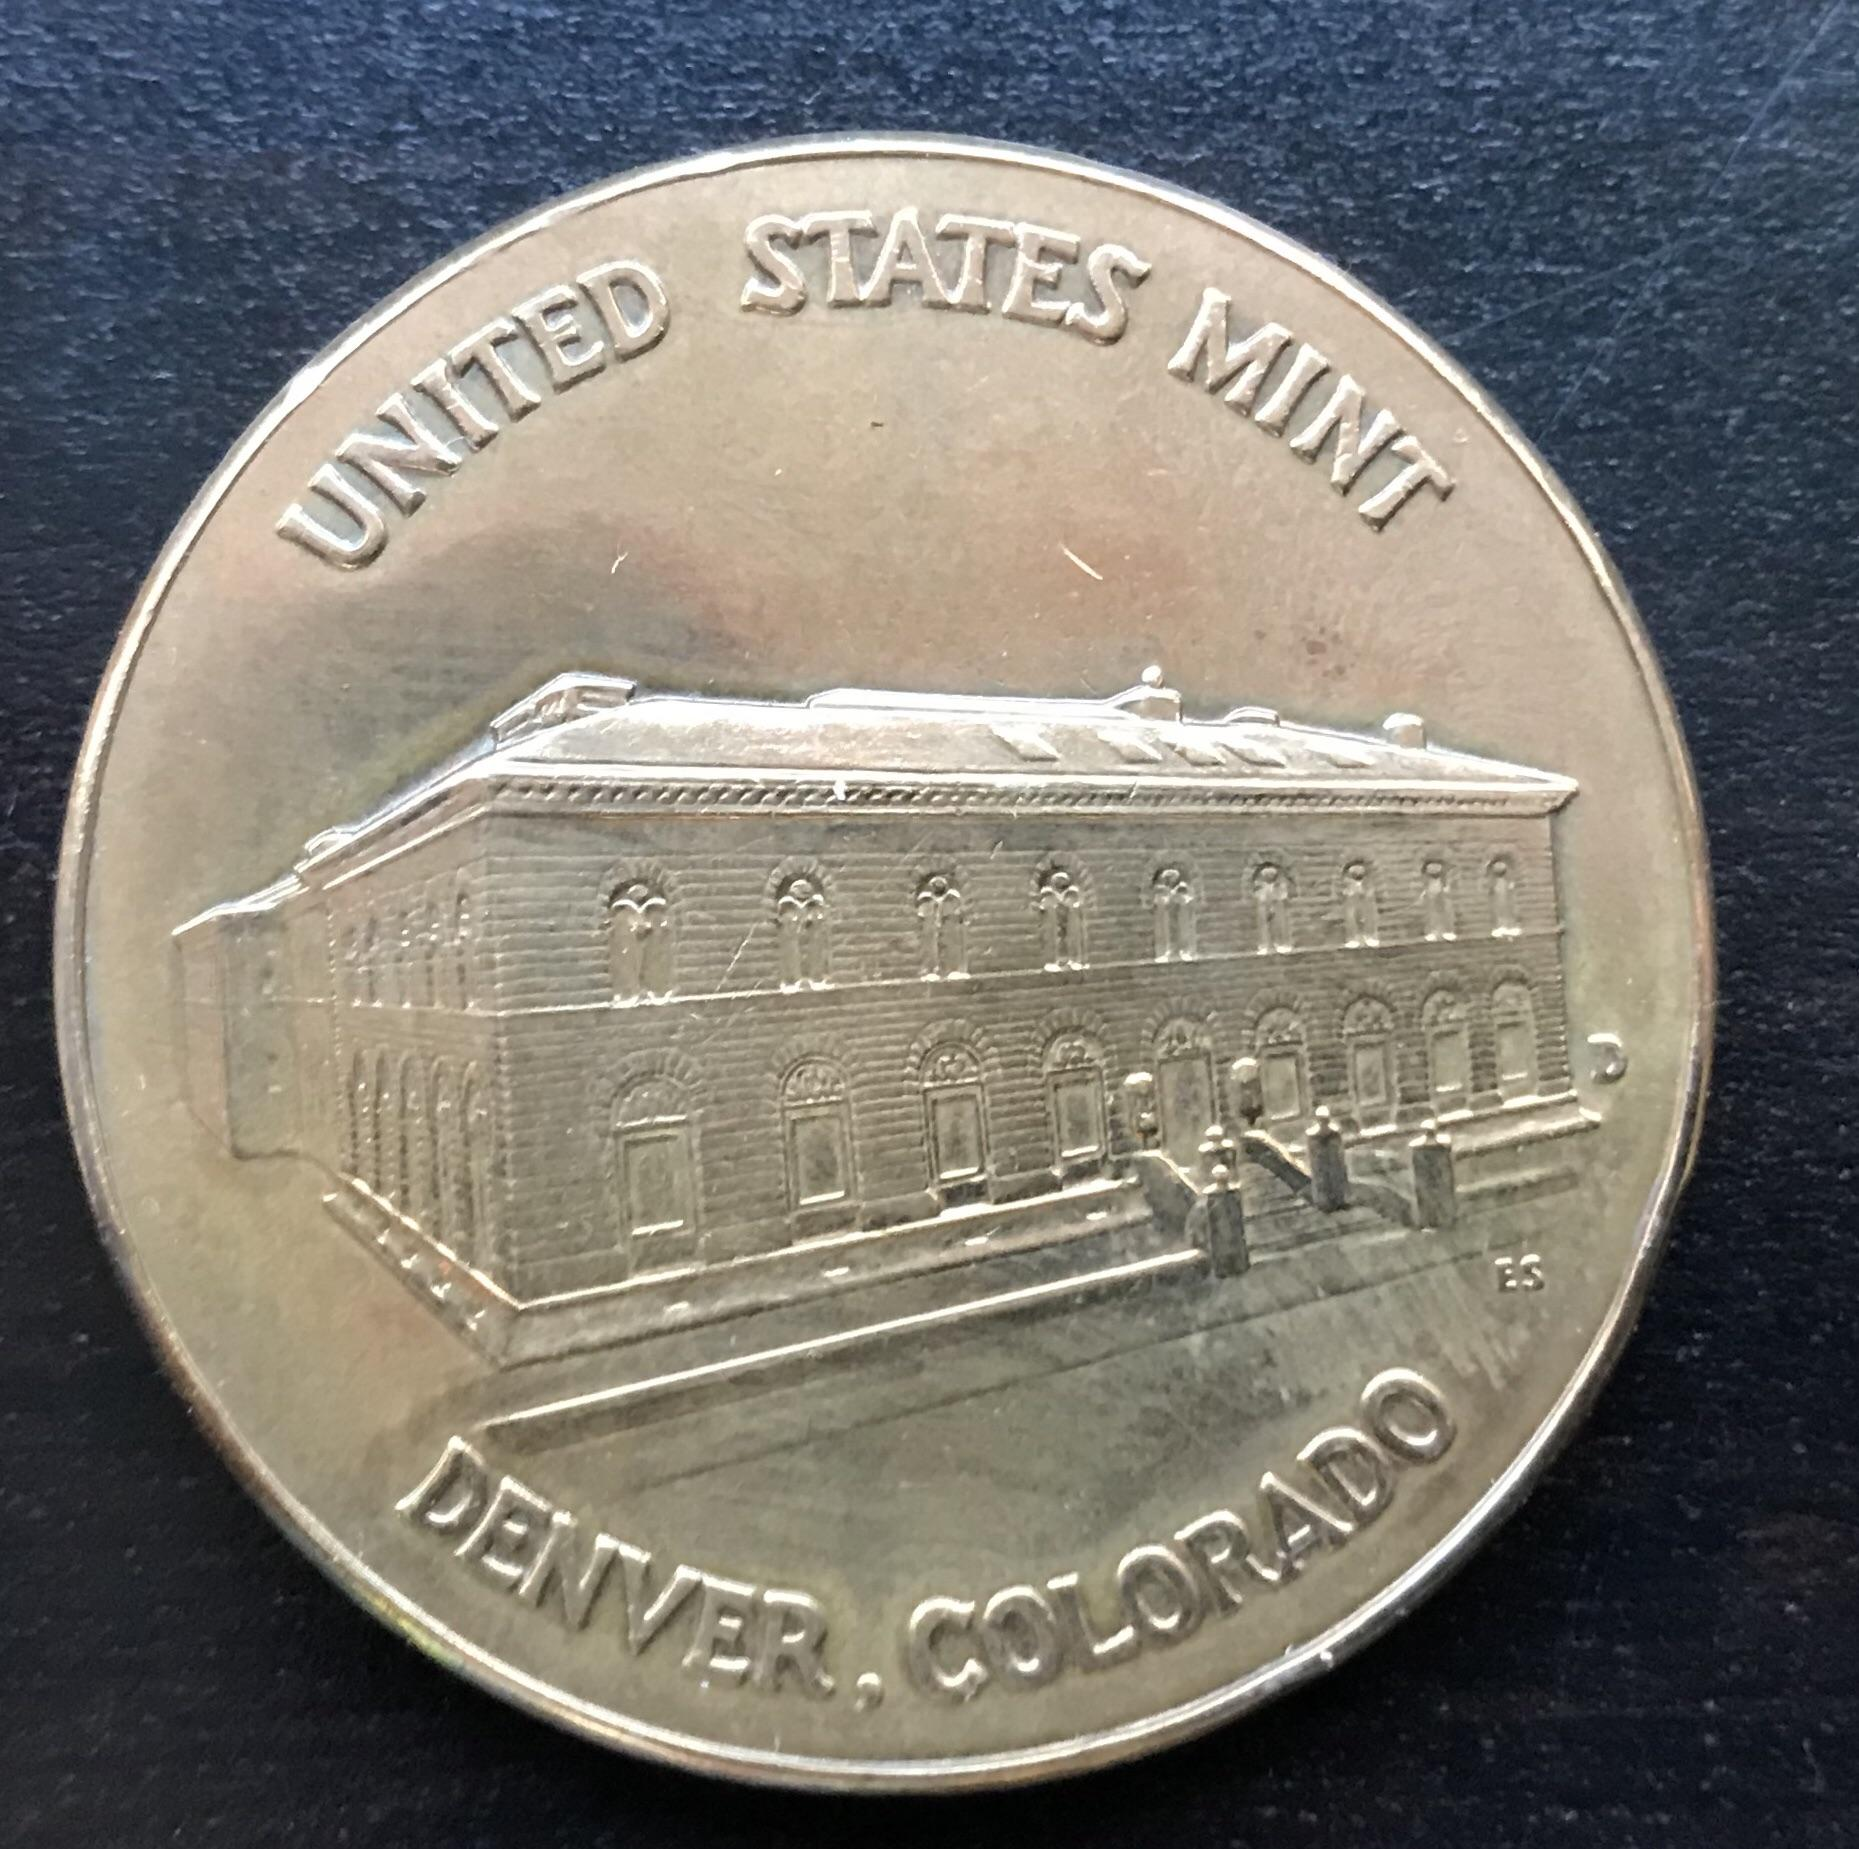 What Do You Know About This Coin Coins